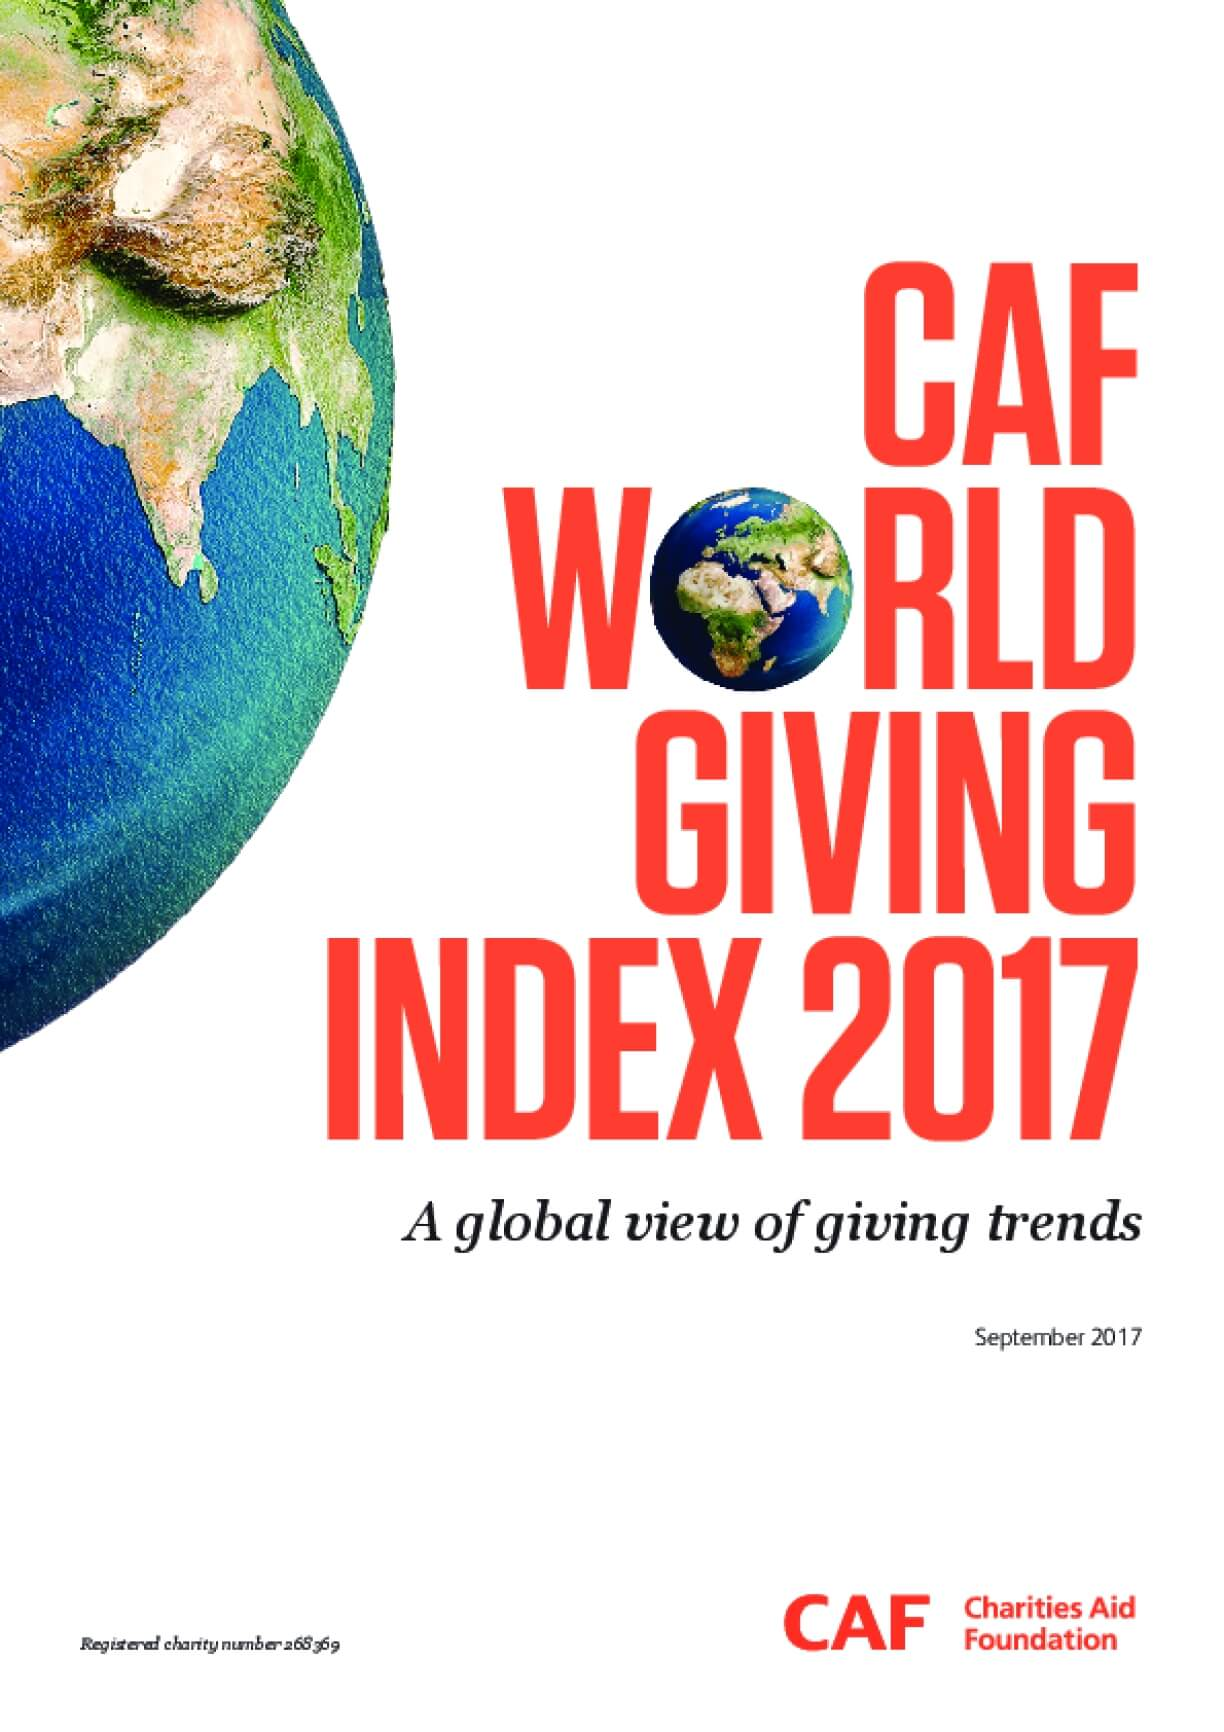 CAF World Giving Index 2017: A Global View of Giving Trends